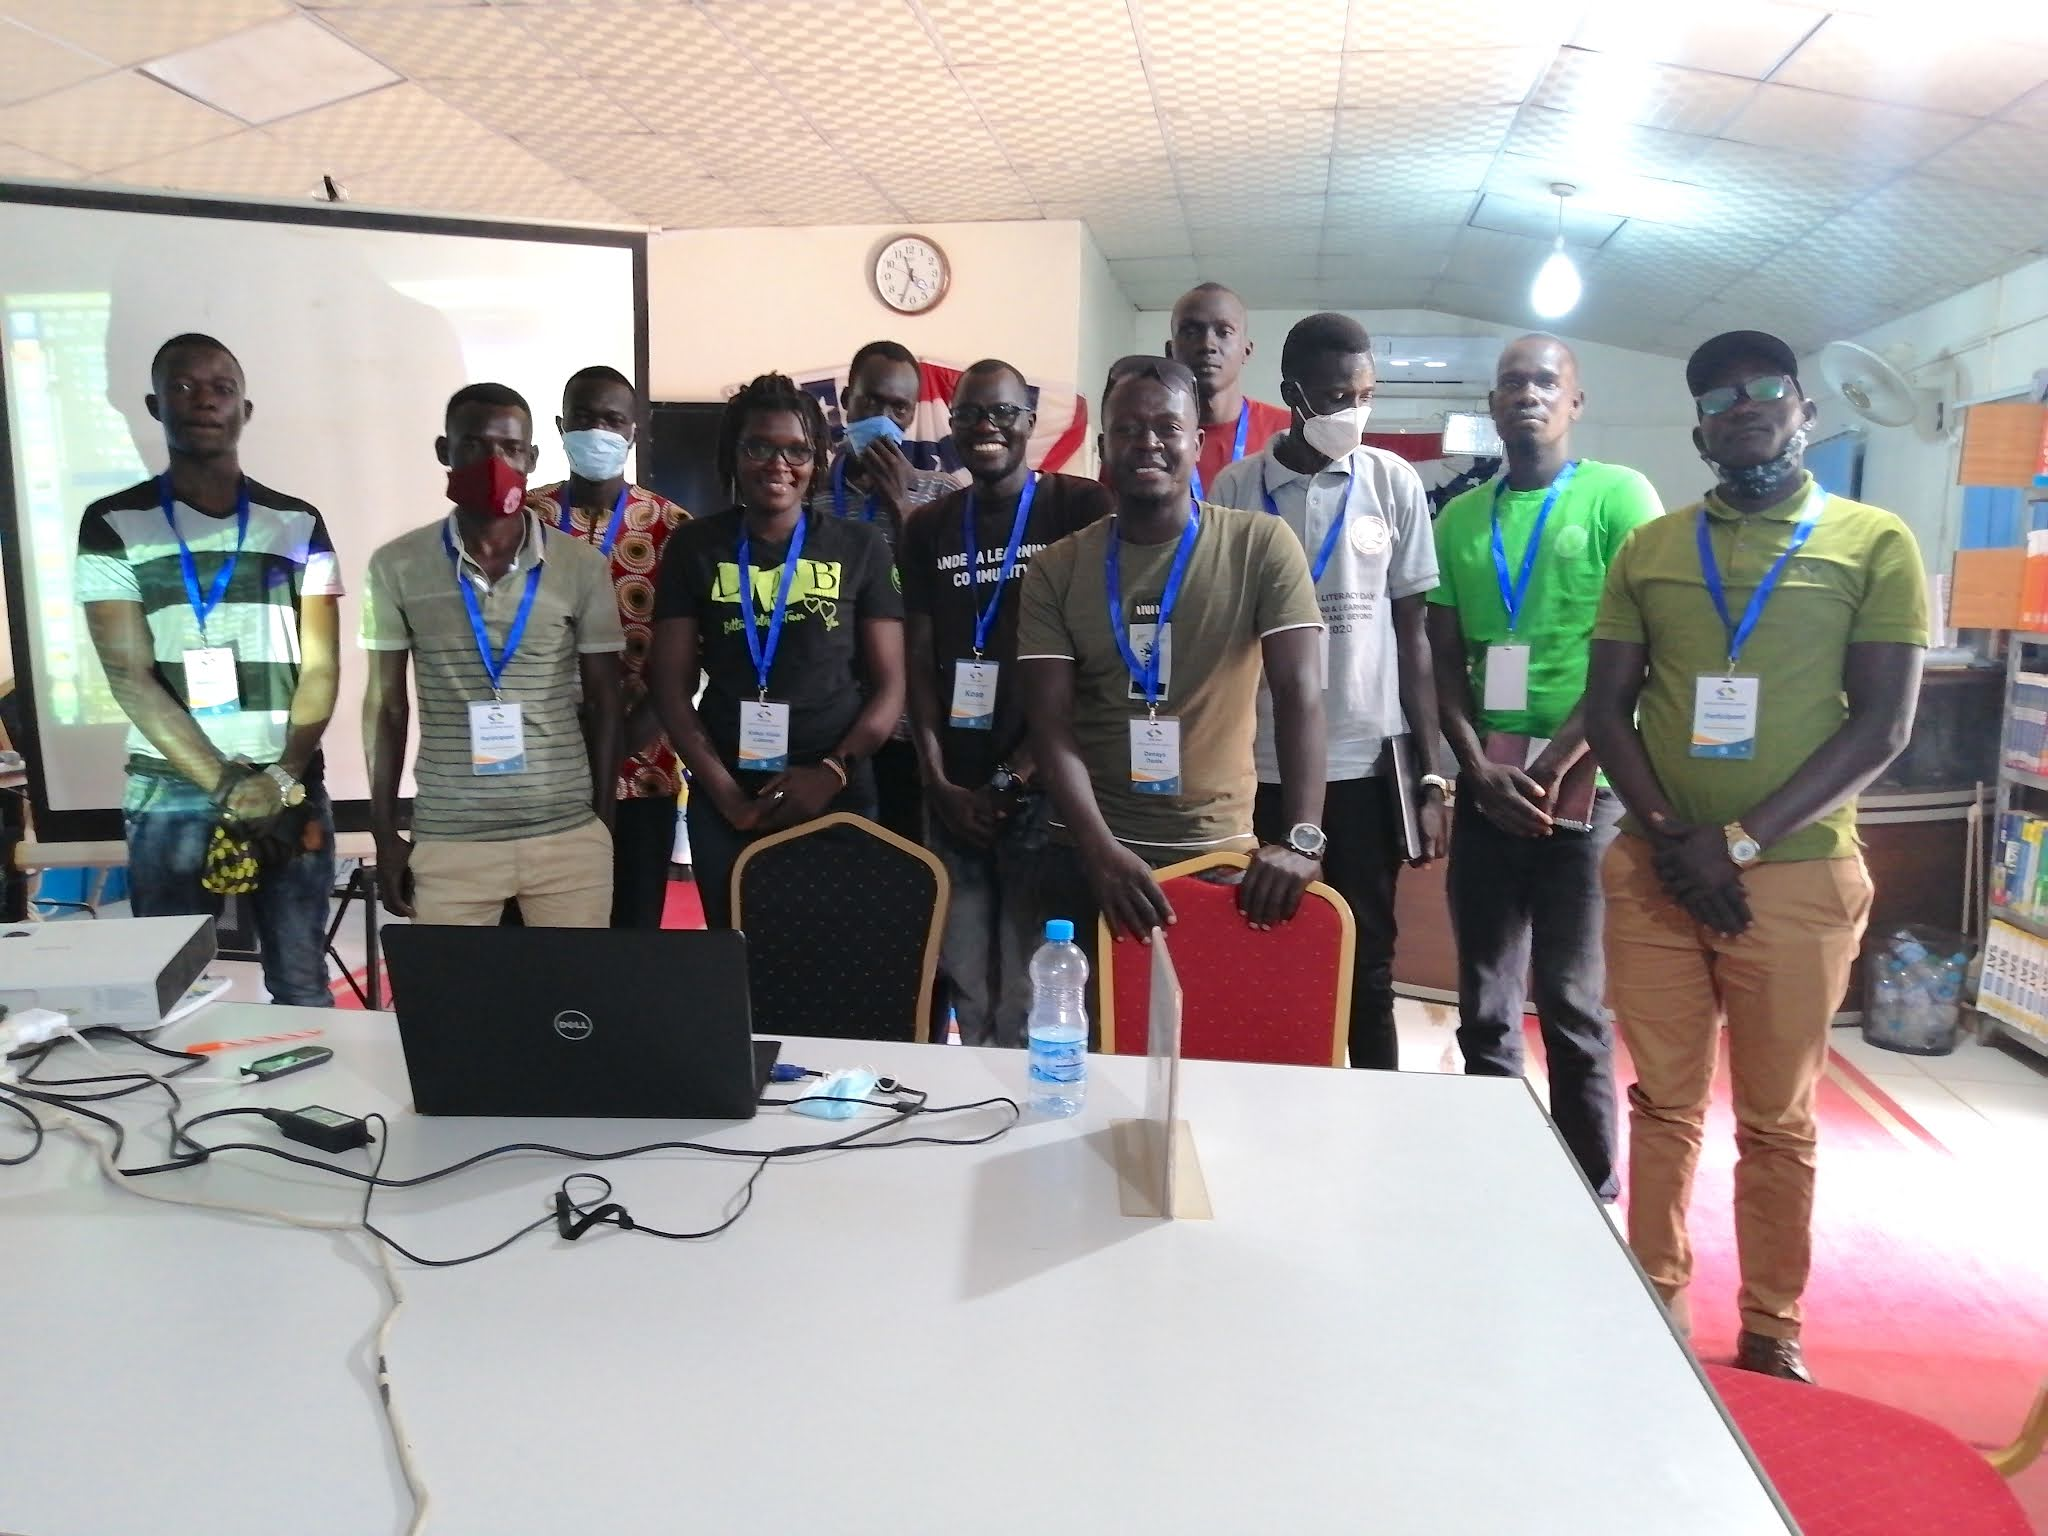 Kose standing with 10 members at GDG Juba meetup